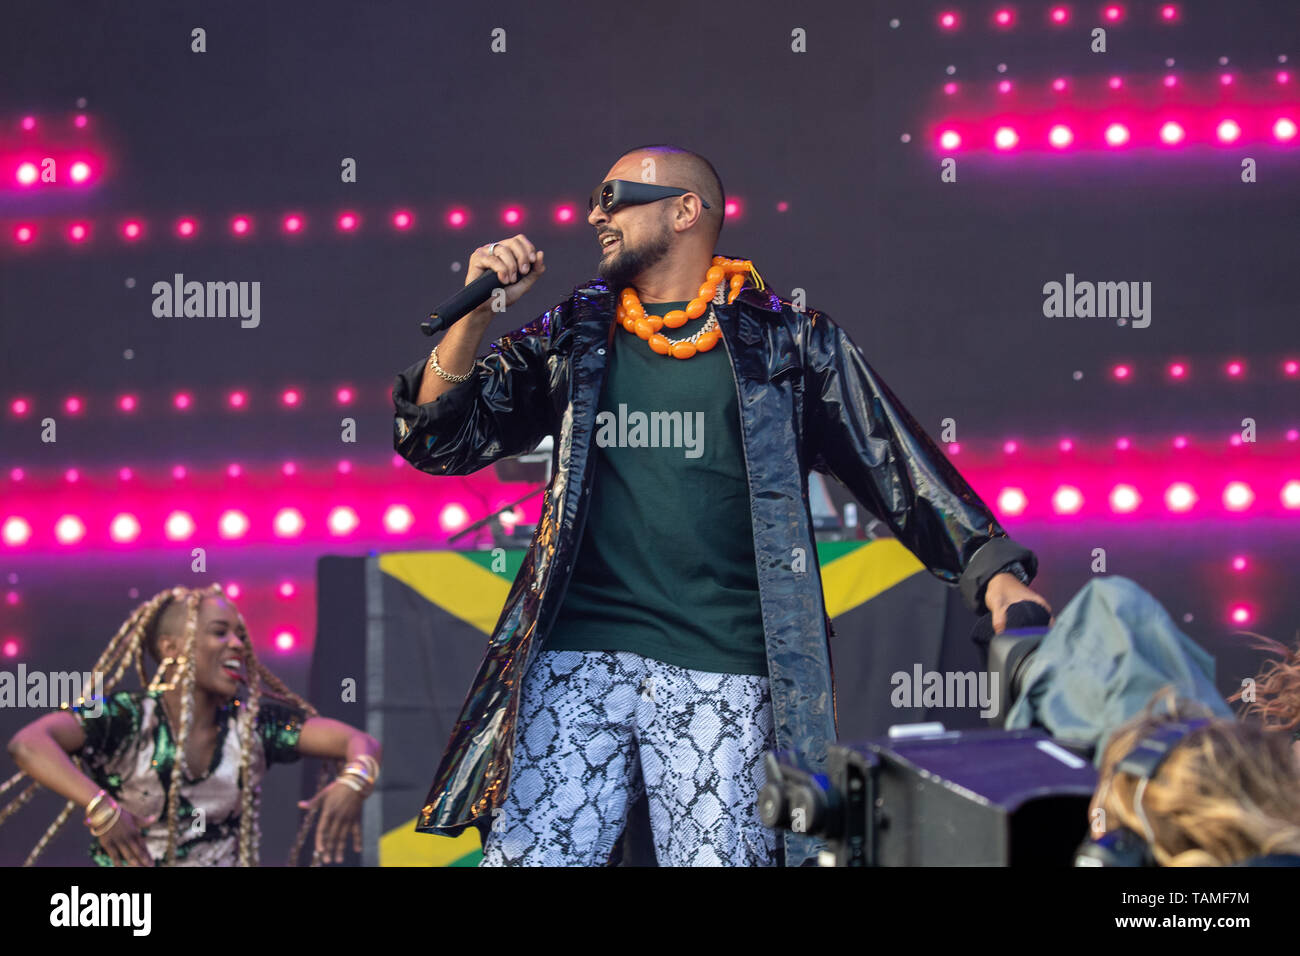 Middlesborough, UK  Sunday 26 May 2019  Sean Paul performs on Day 2